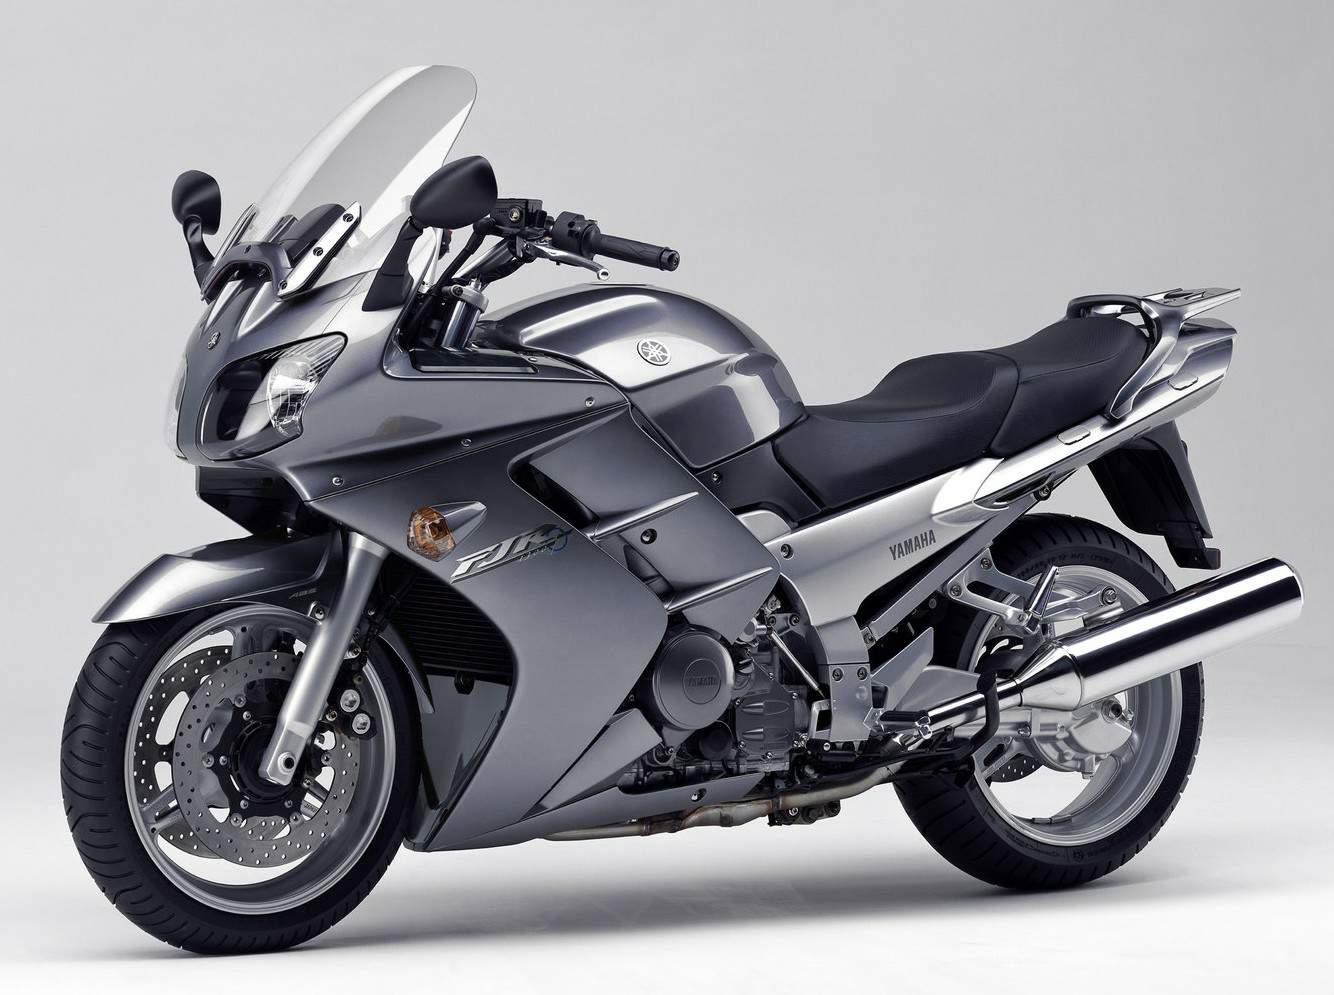 yamaha fjr 1300 one of the finest sport touring motorcycle. Black Bedroom Furniture Sets. Home Design Ideas